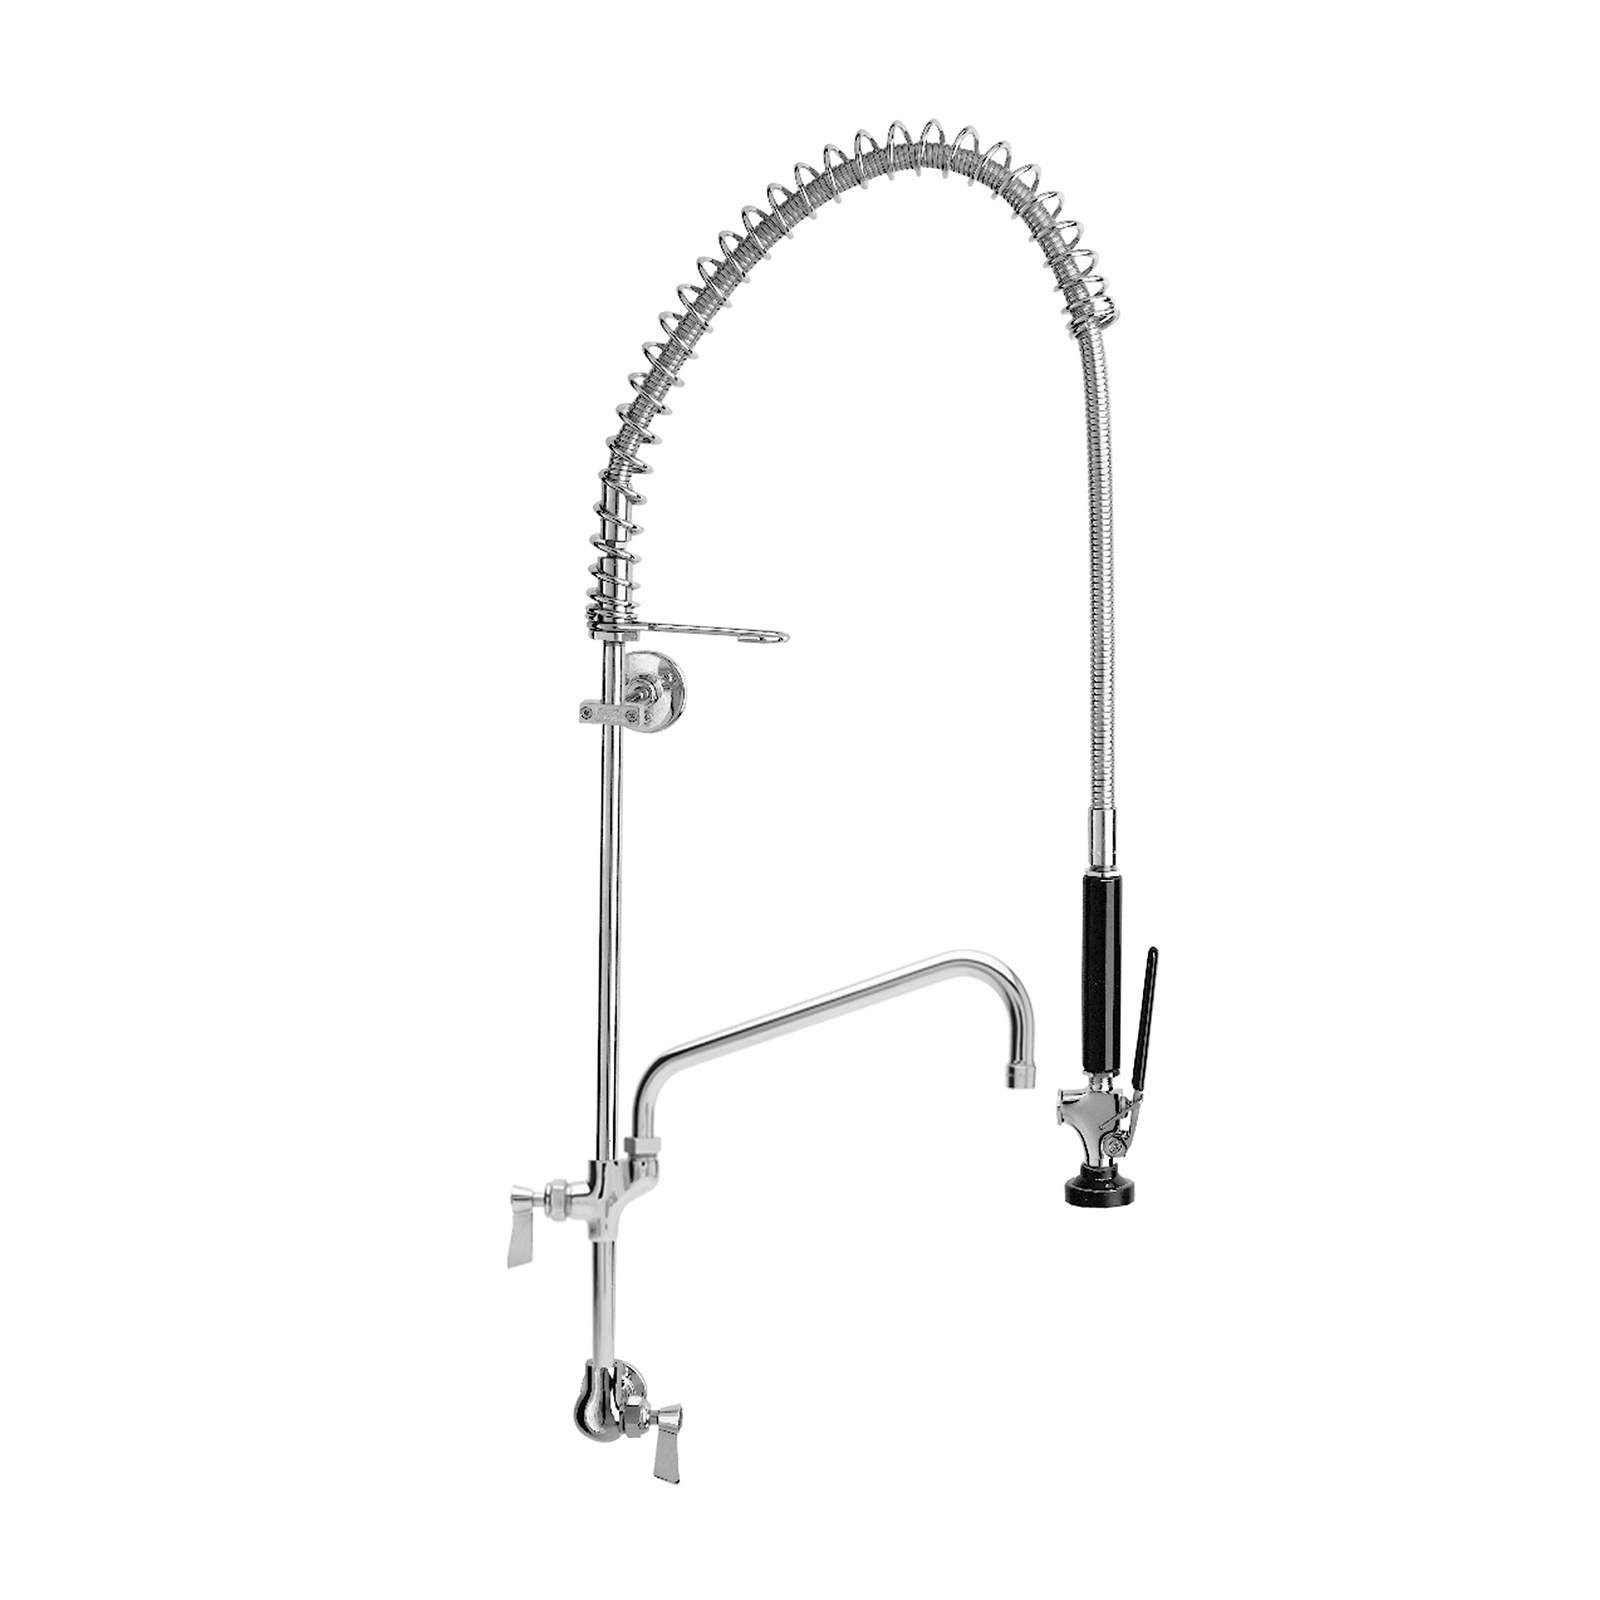 Fisher 34568 pre-rinse faucet assembly, with add on faucet